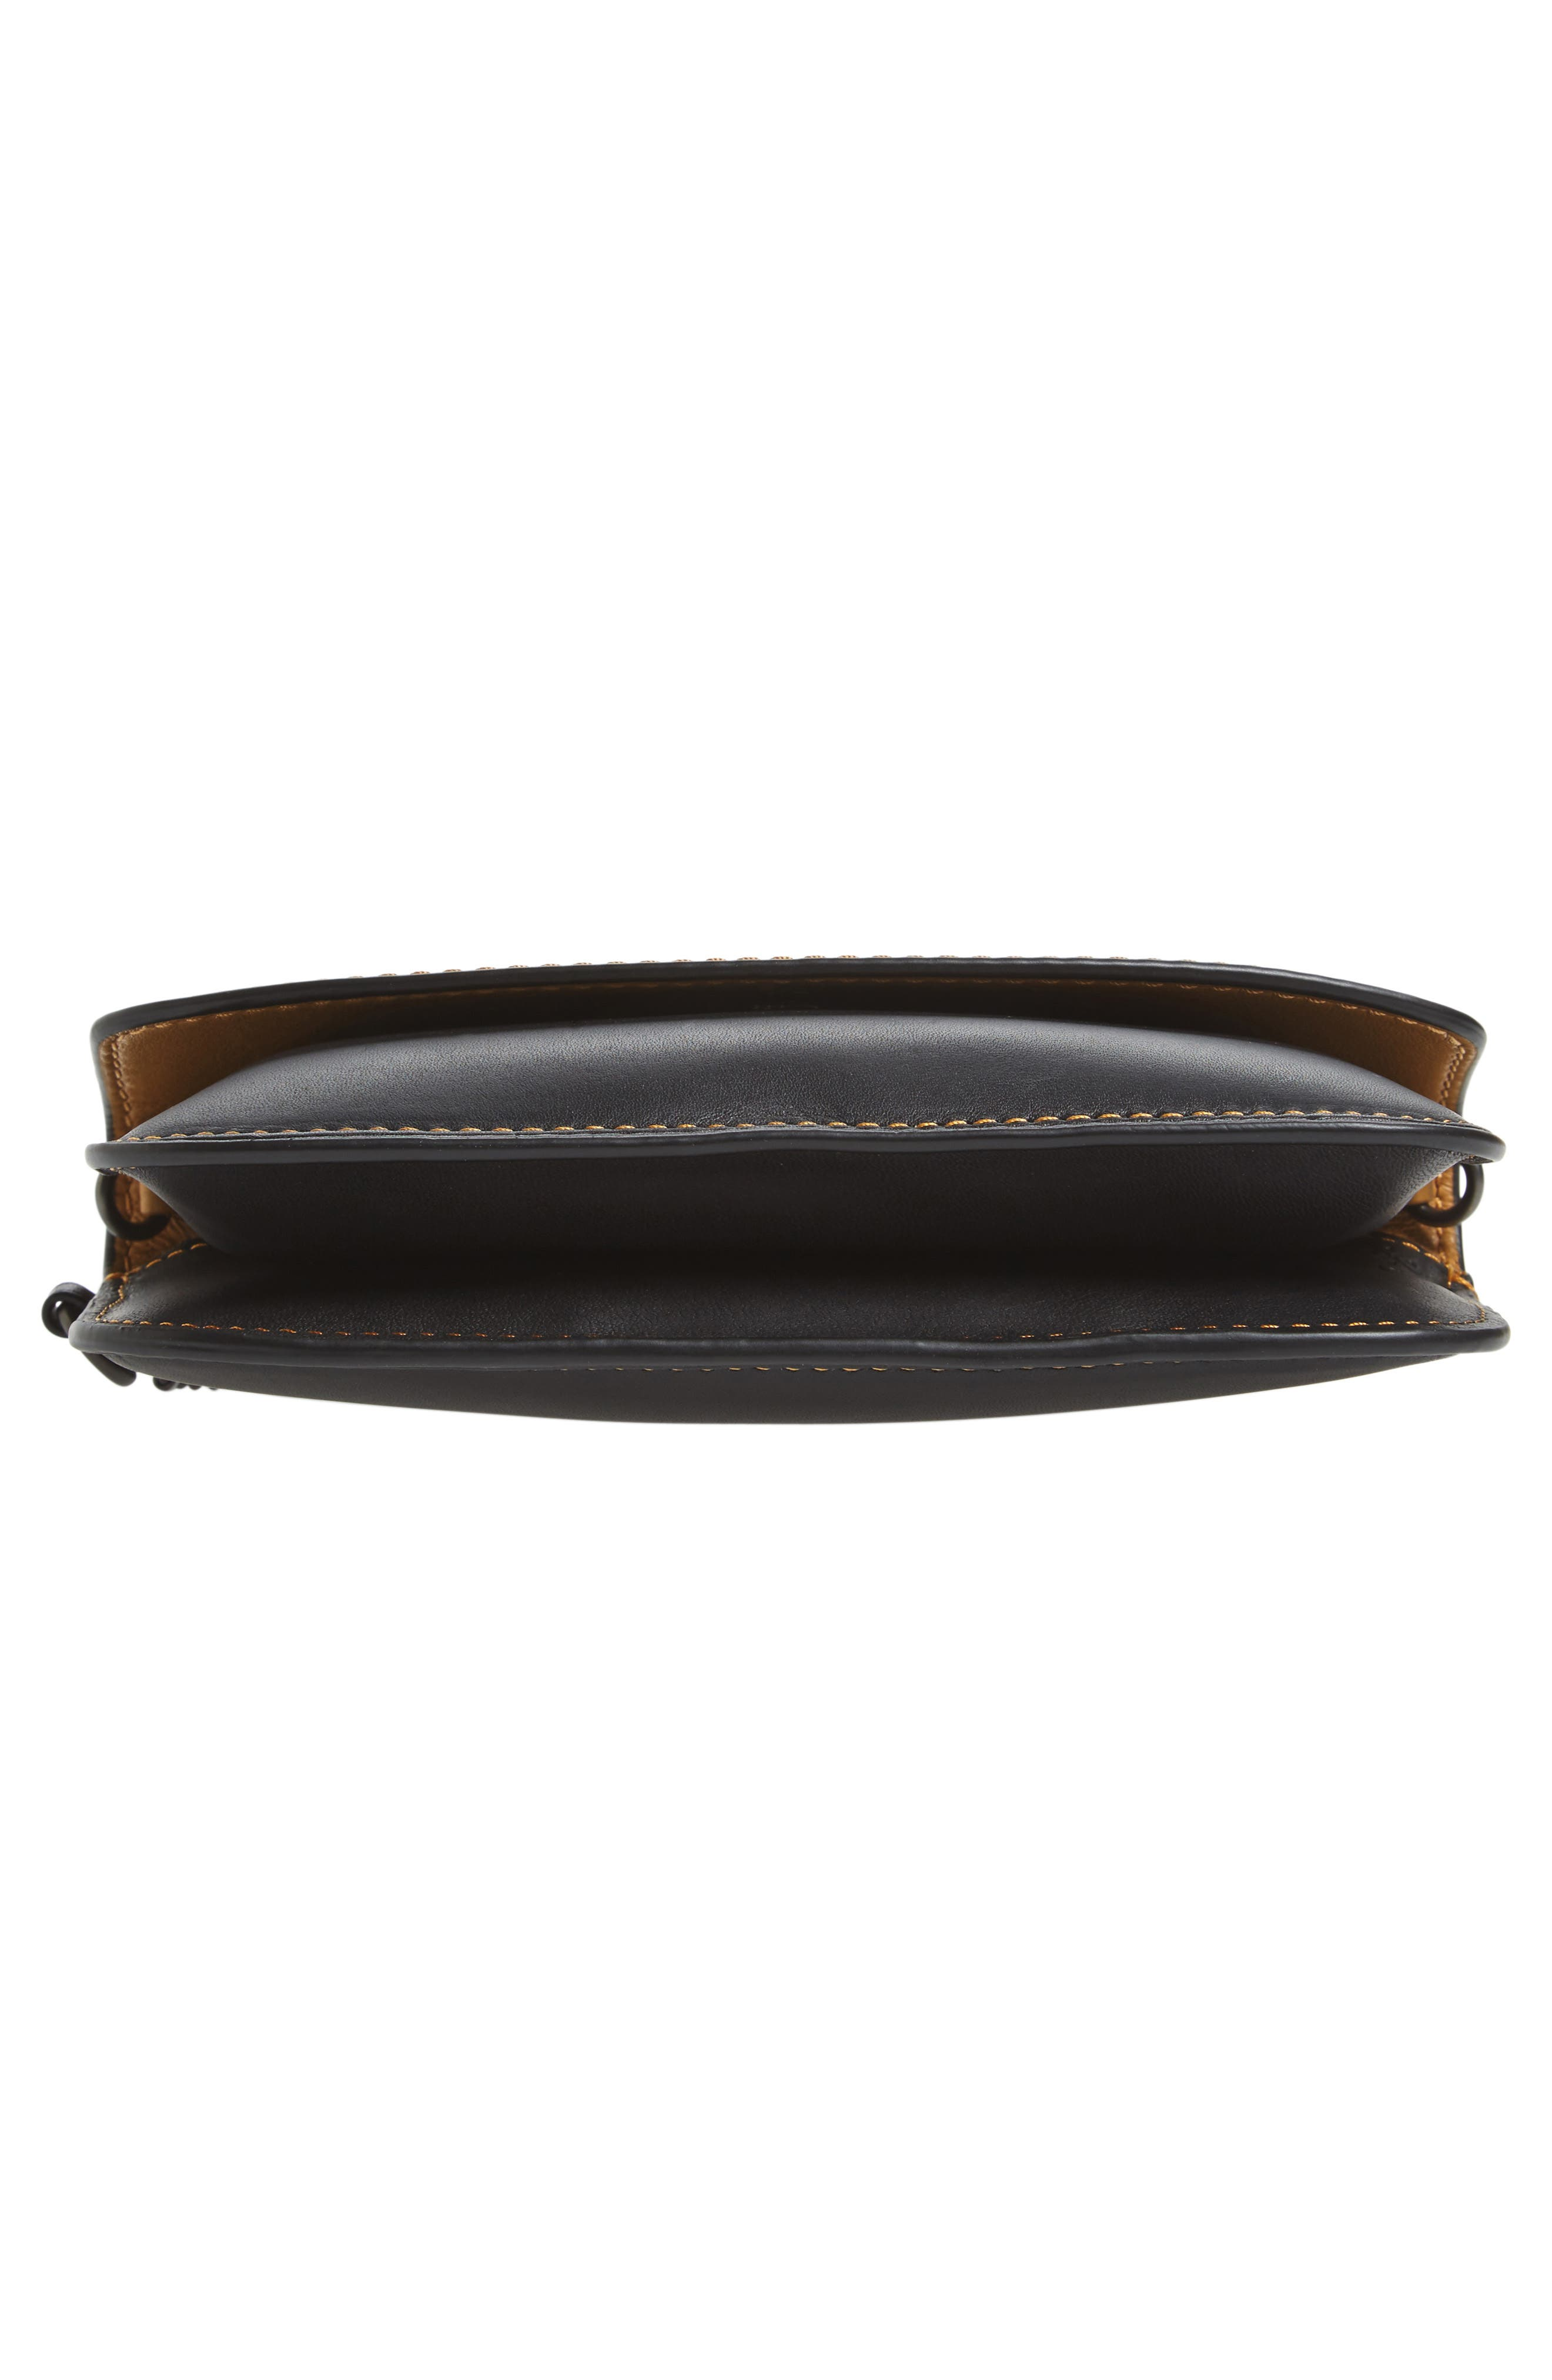 Leather Clutch,                             Alternate thumbnail 6, color,                             001